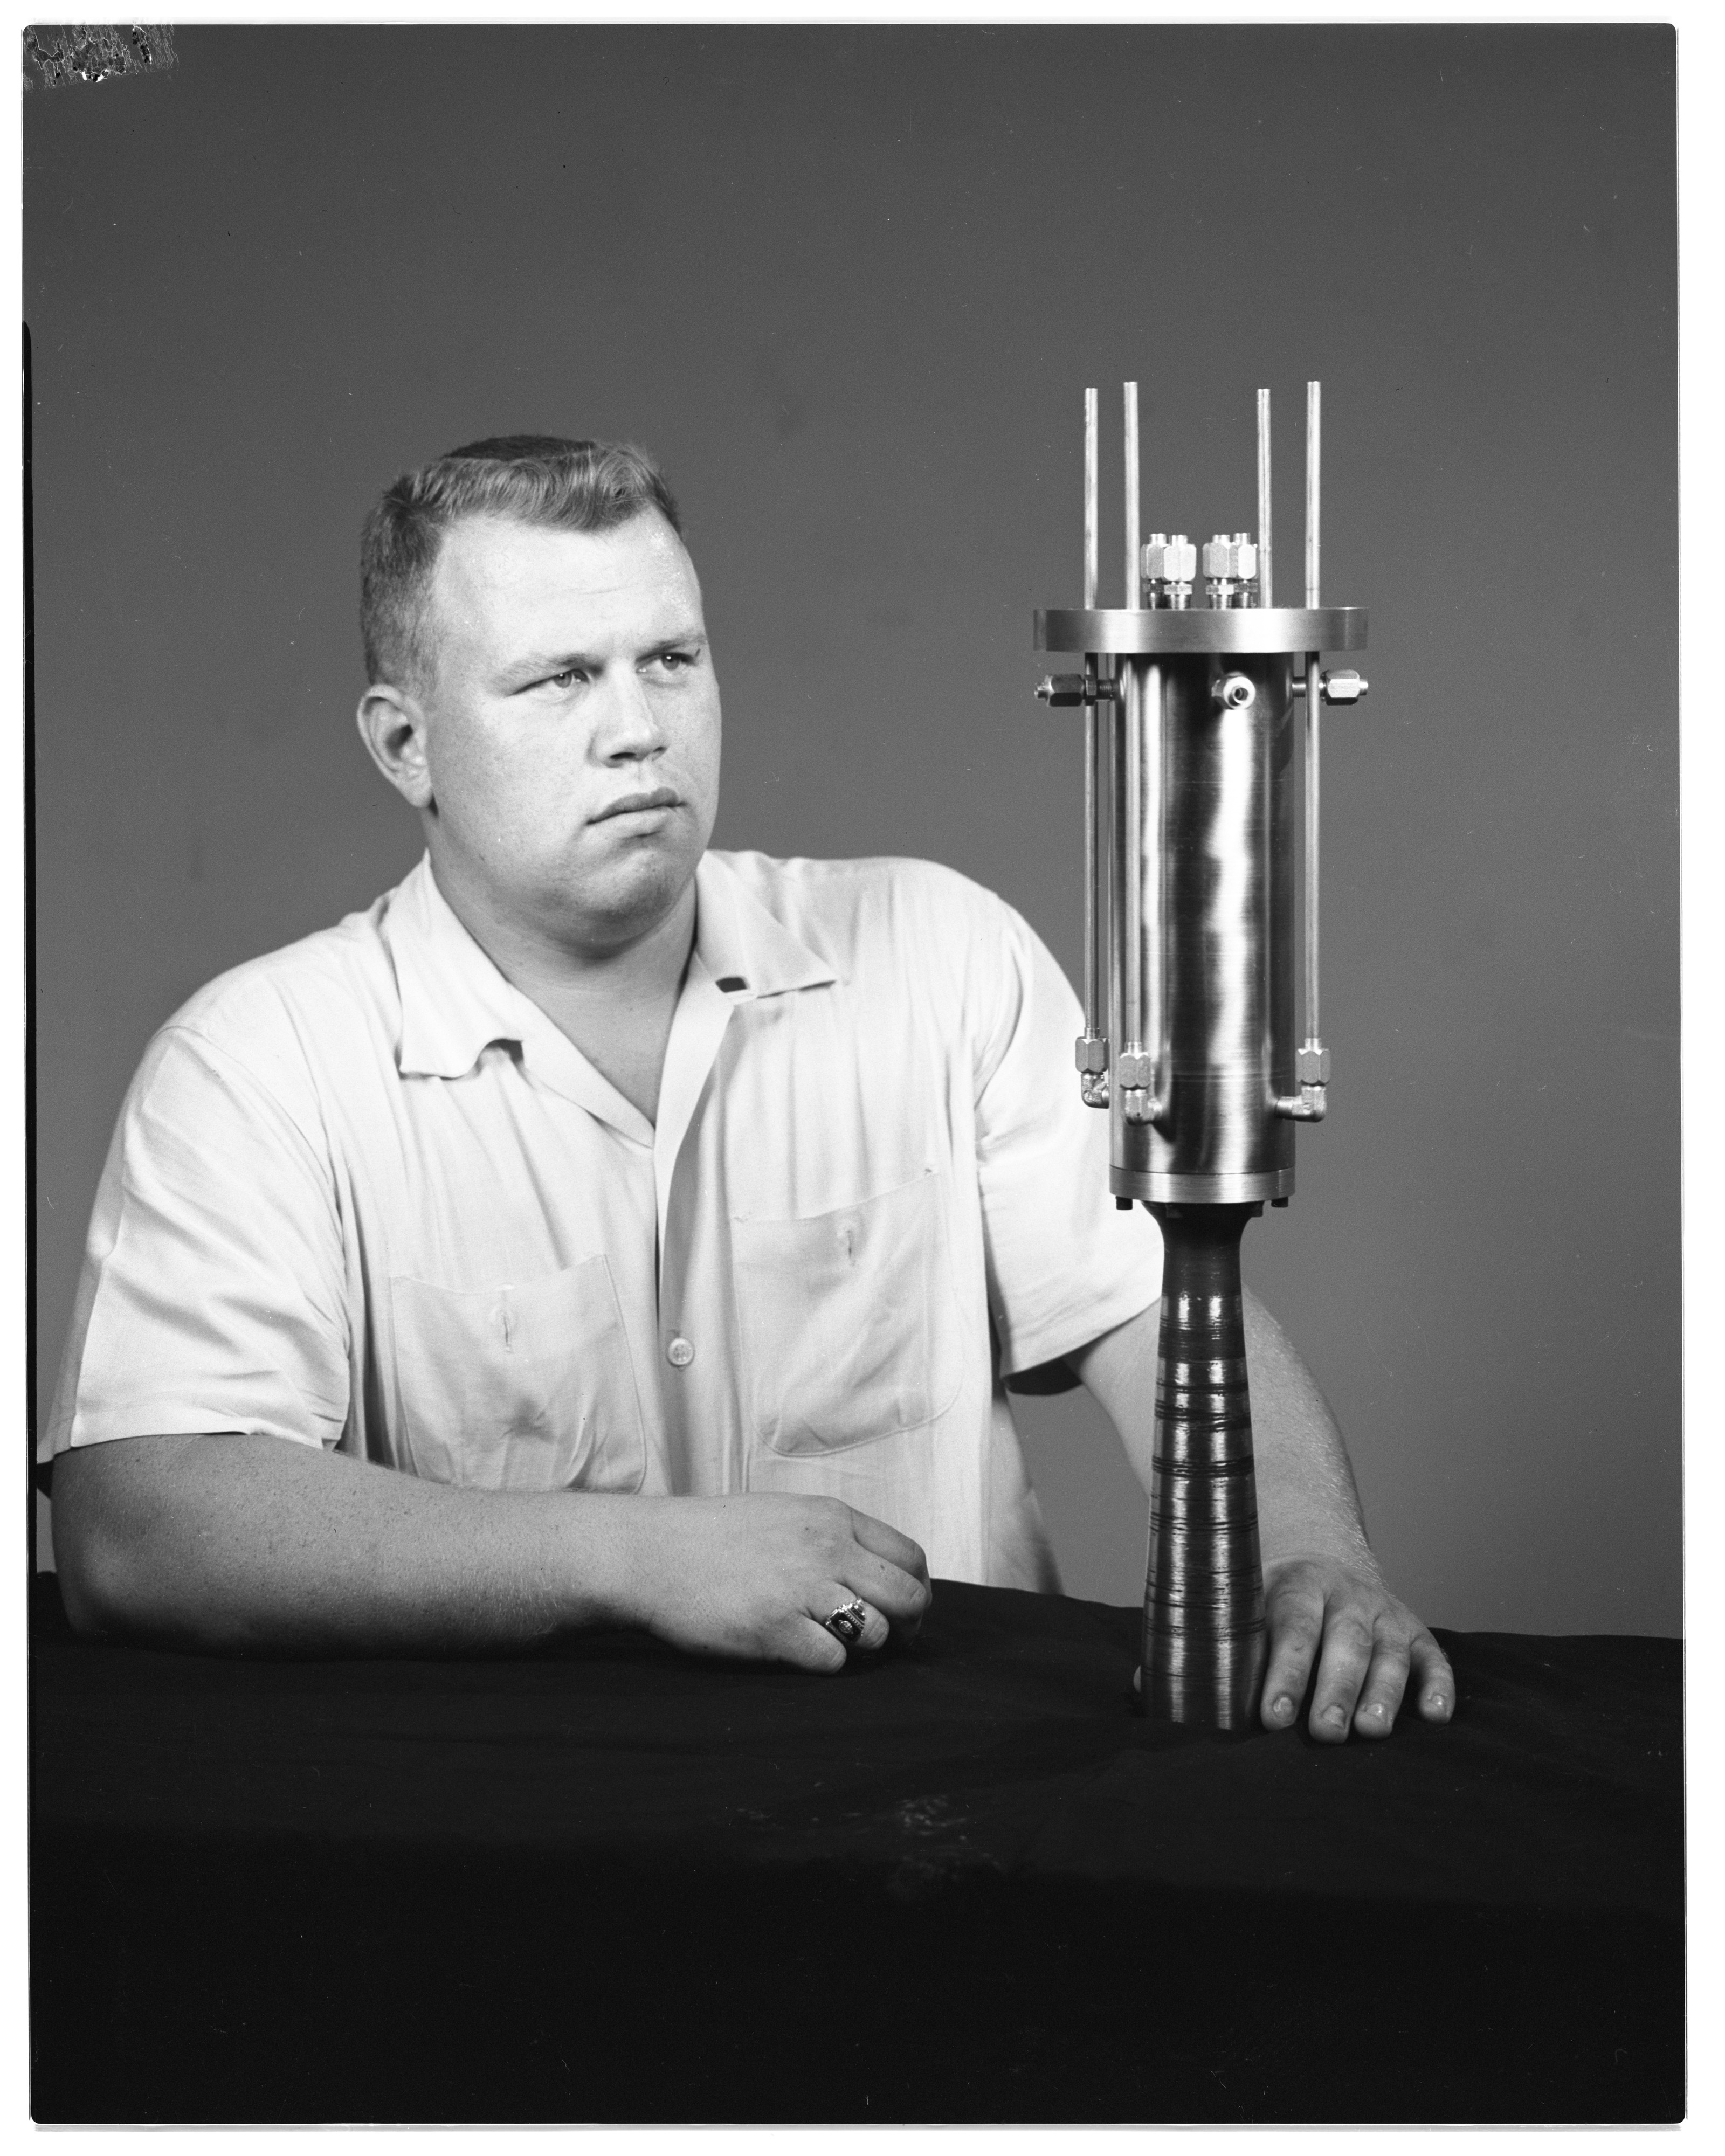 Jim Richards With Homemade Rocket, July 1960 image